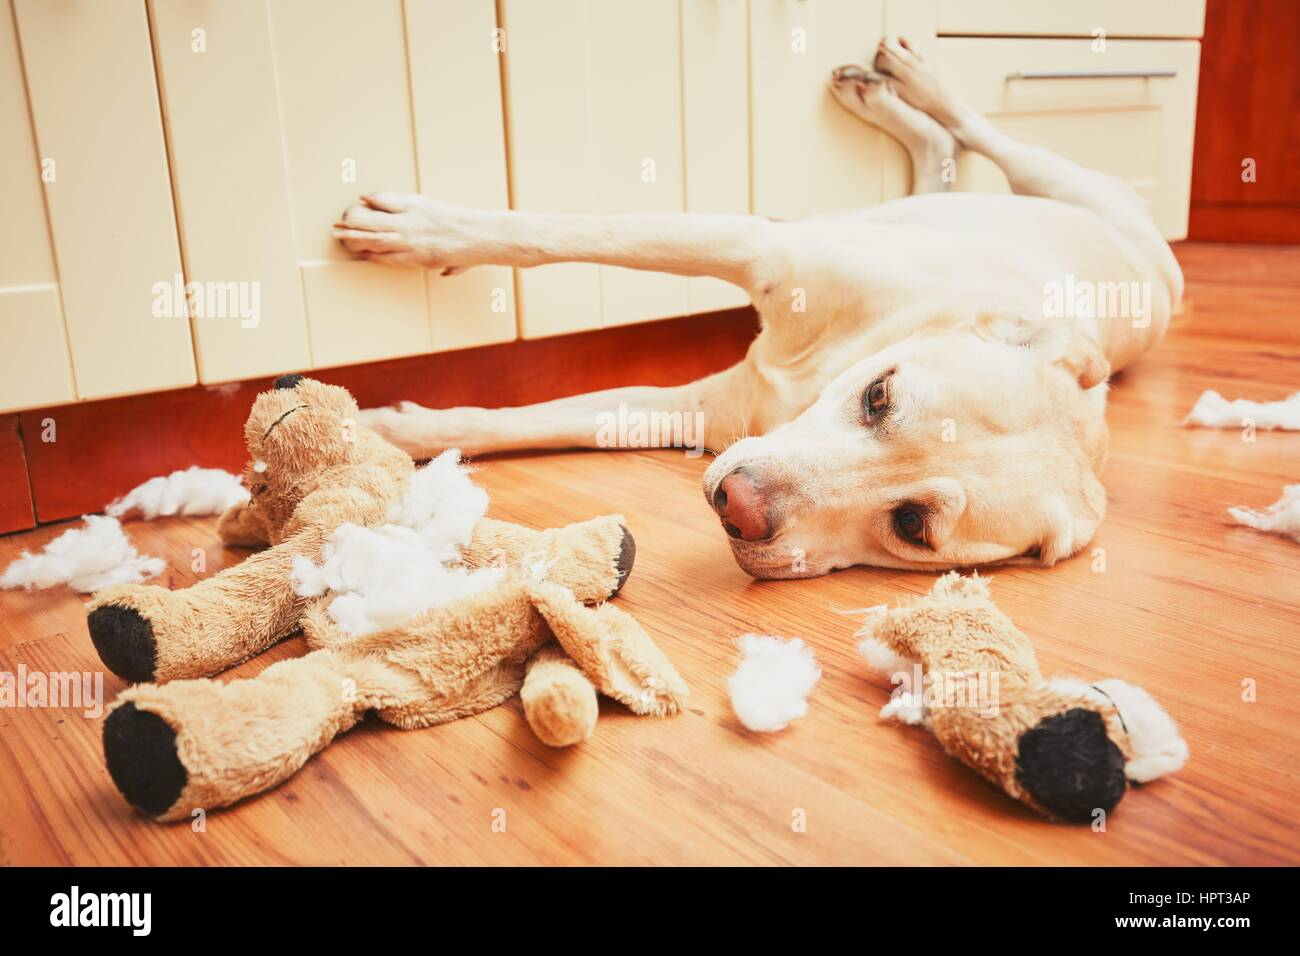 Naughty dog home alone - yellow labrador retriever destroyed the plush toy and made a mess in the apartment - Stock Image